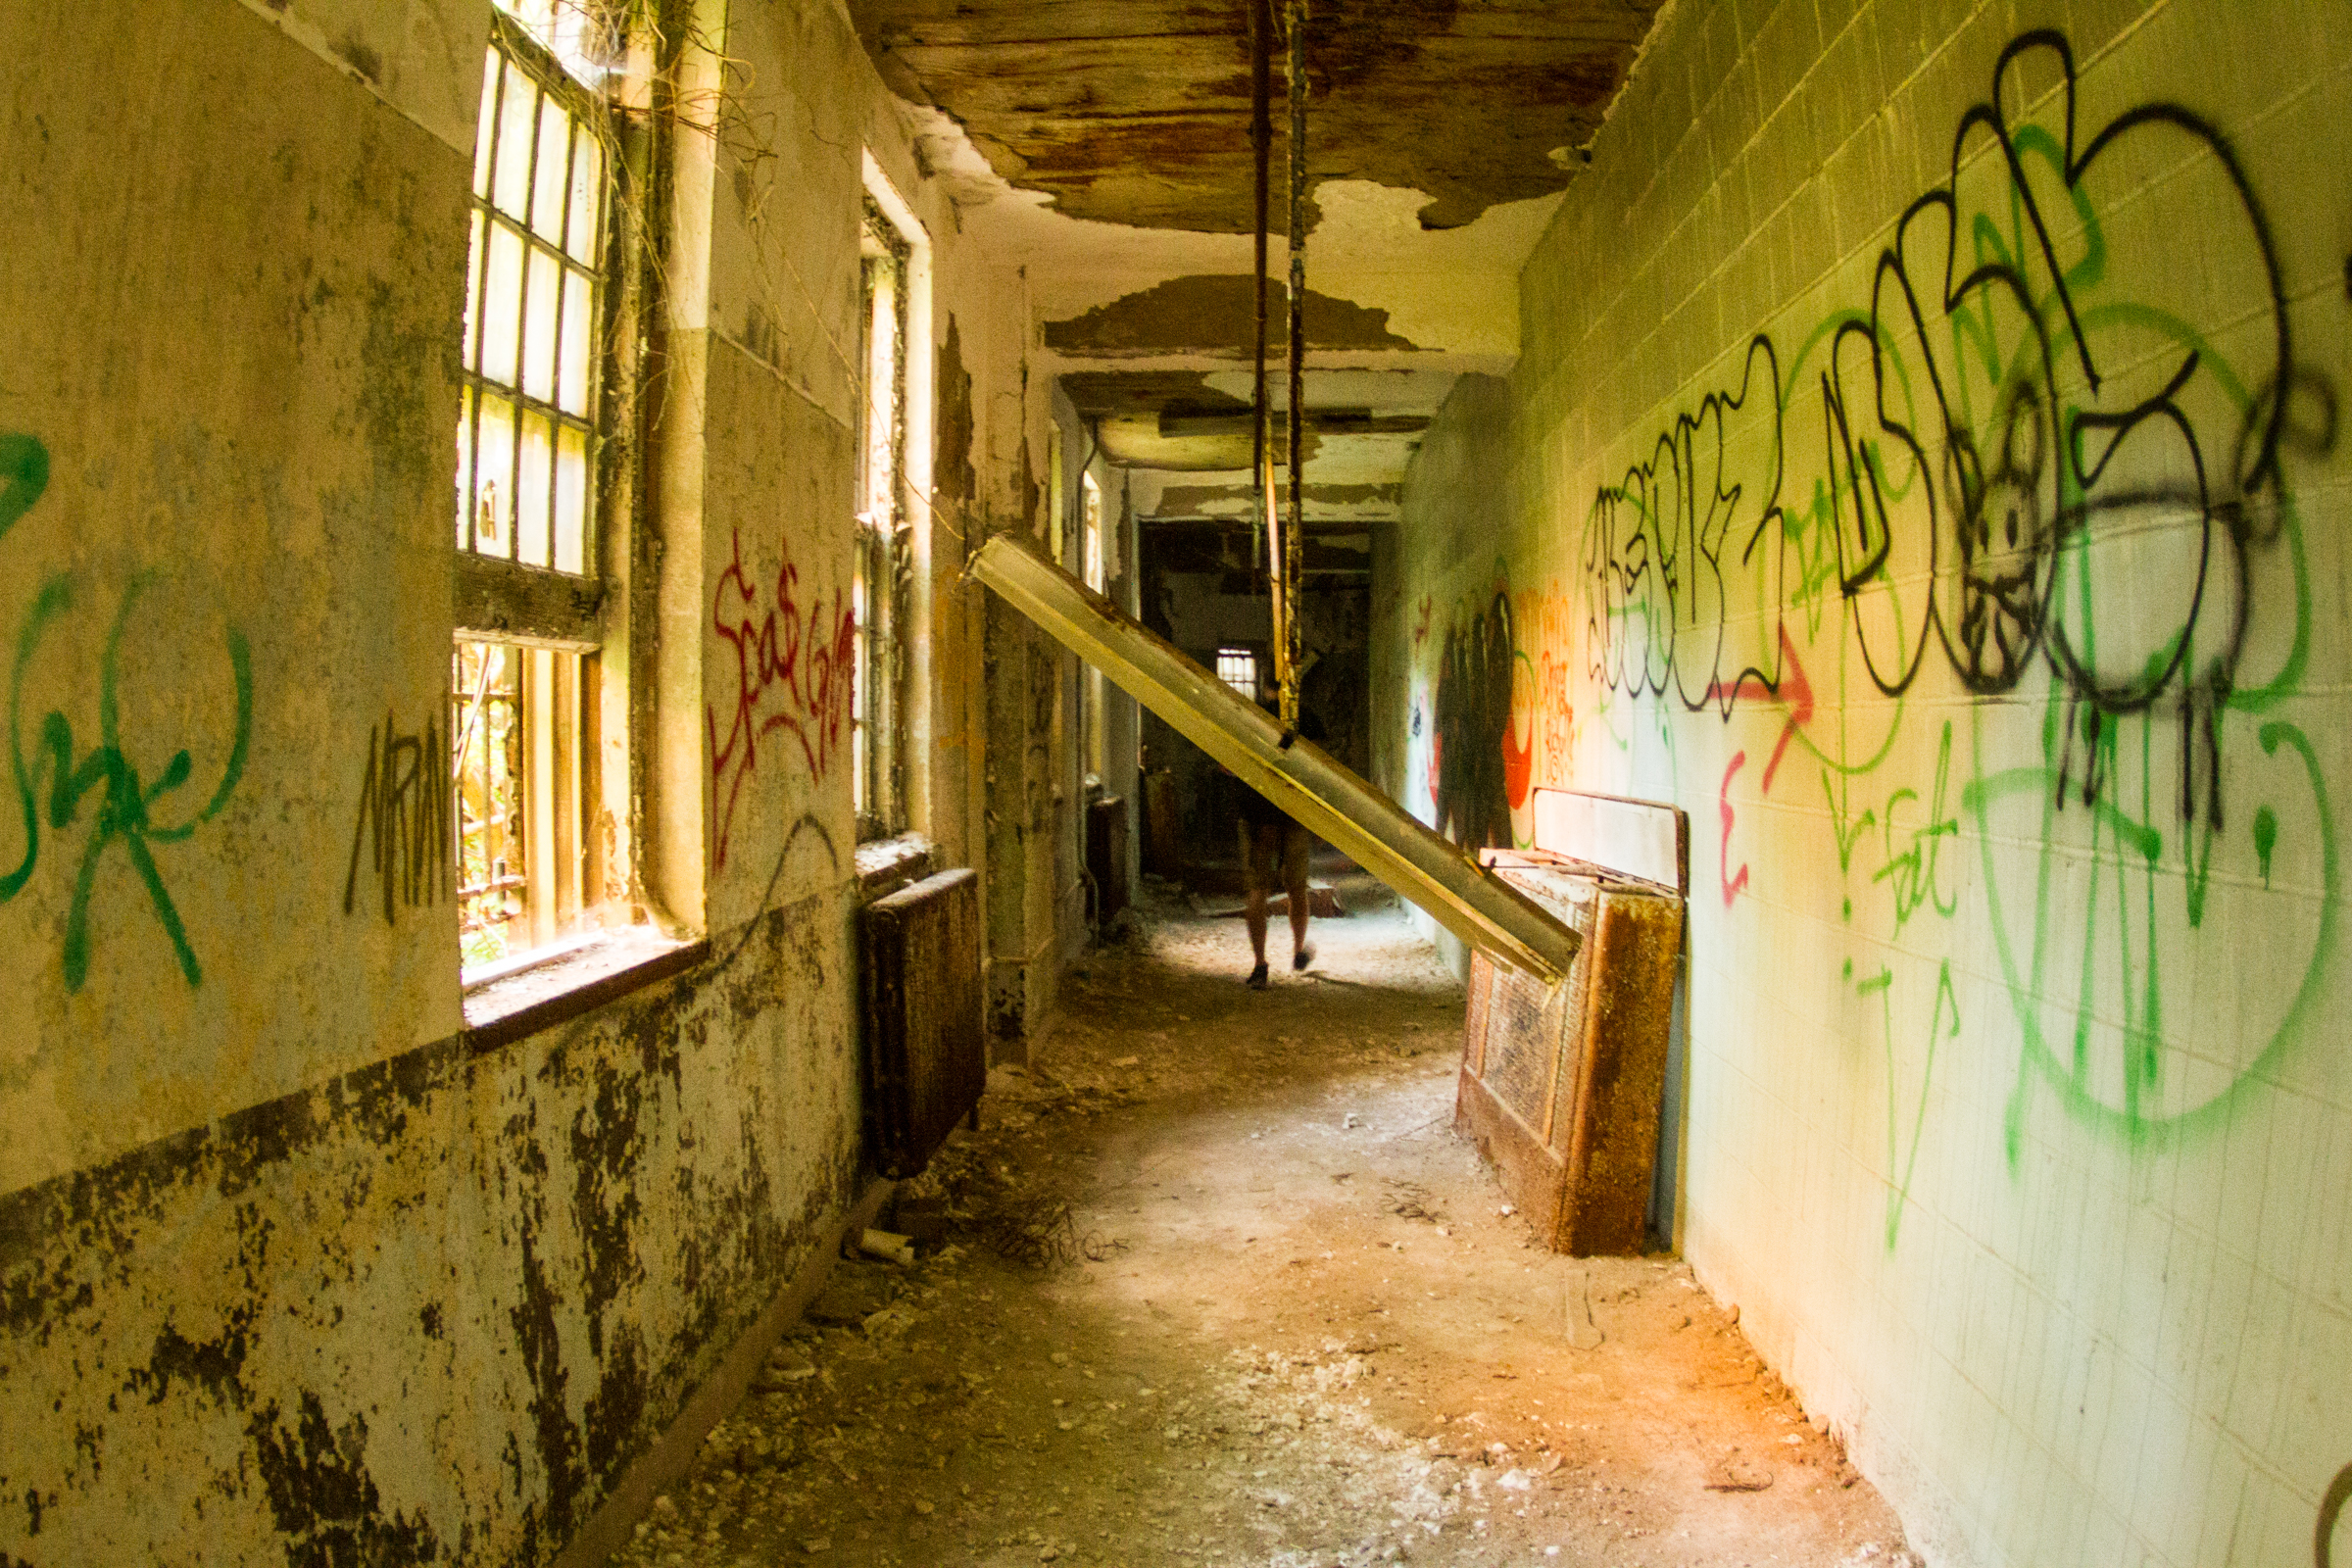 Urban Exploring: The Quad by Wander with Jill - Wander with Jill